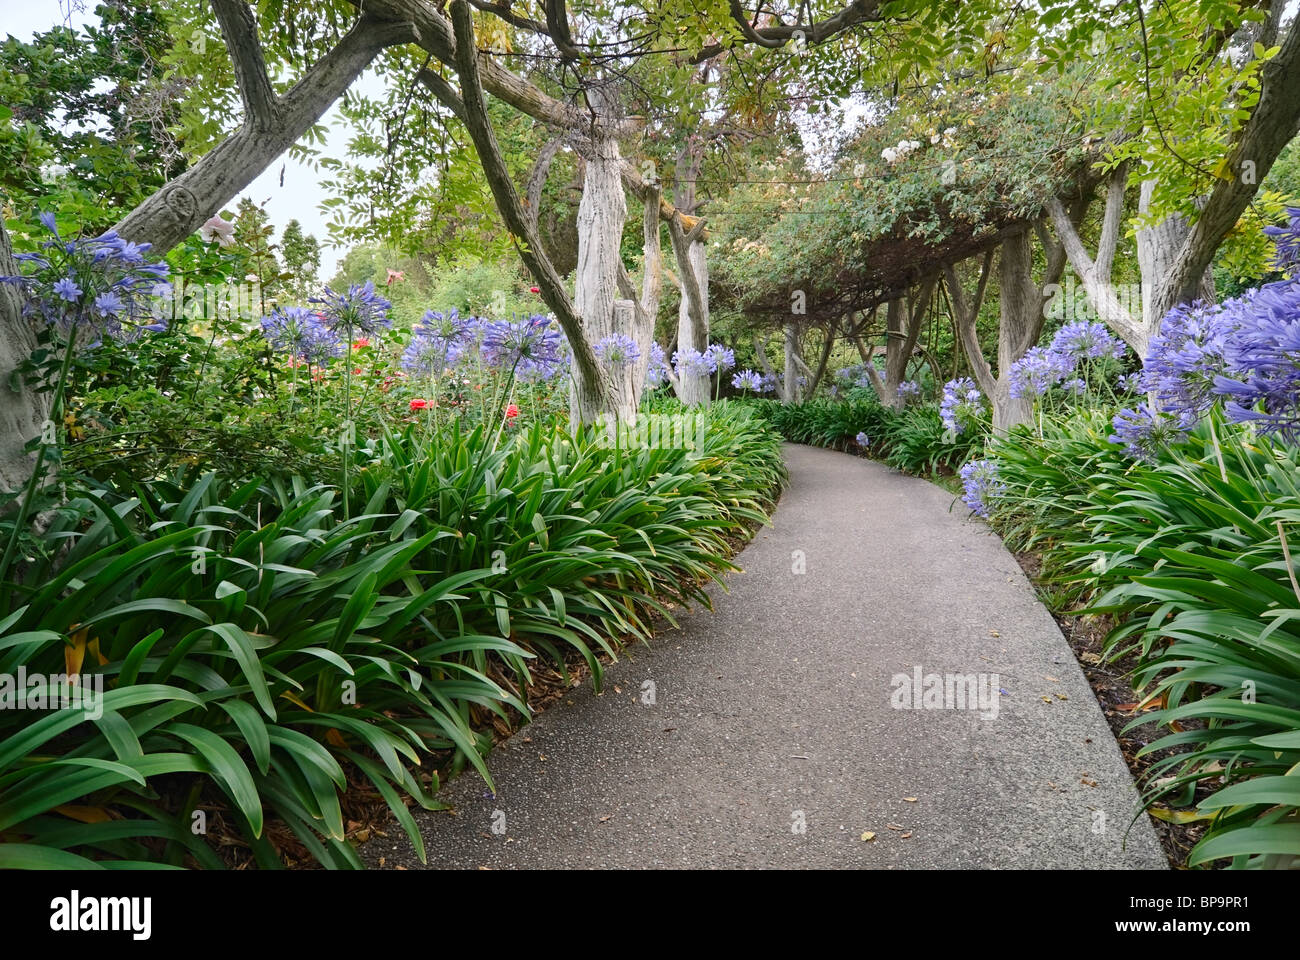 Beautiful walkway towards a lush garden. - Stock Image